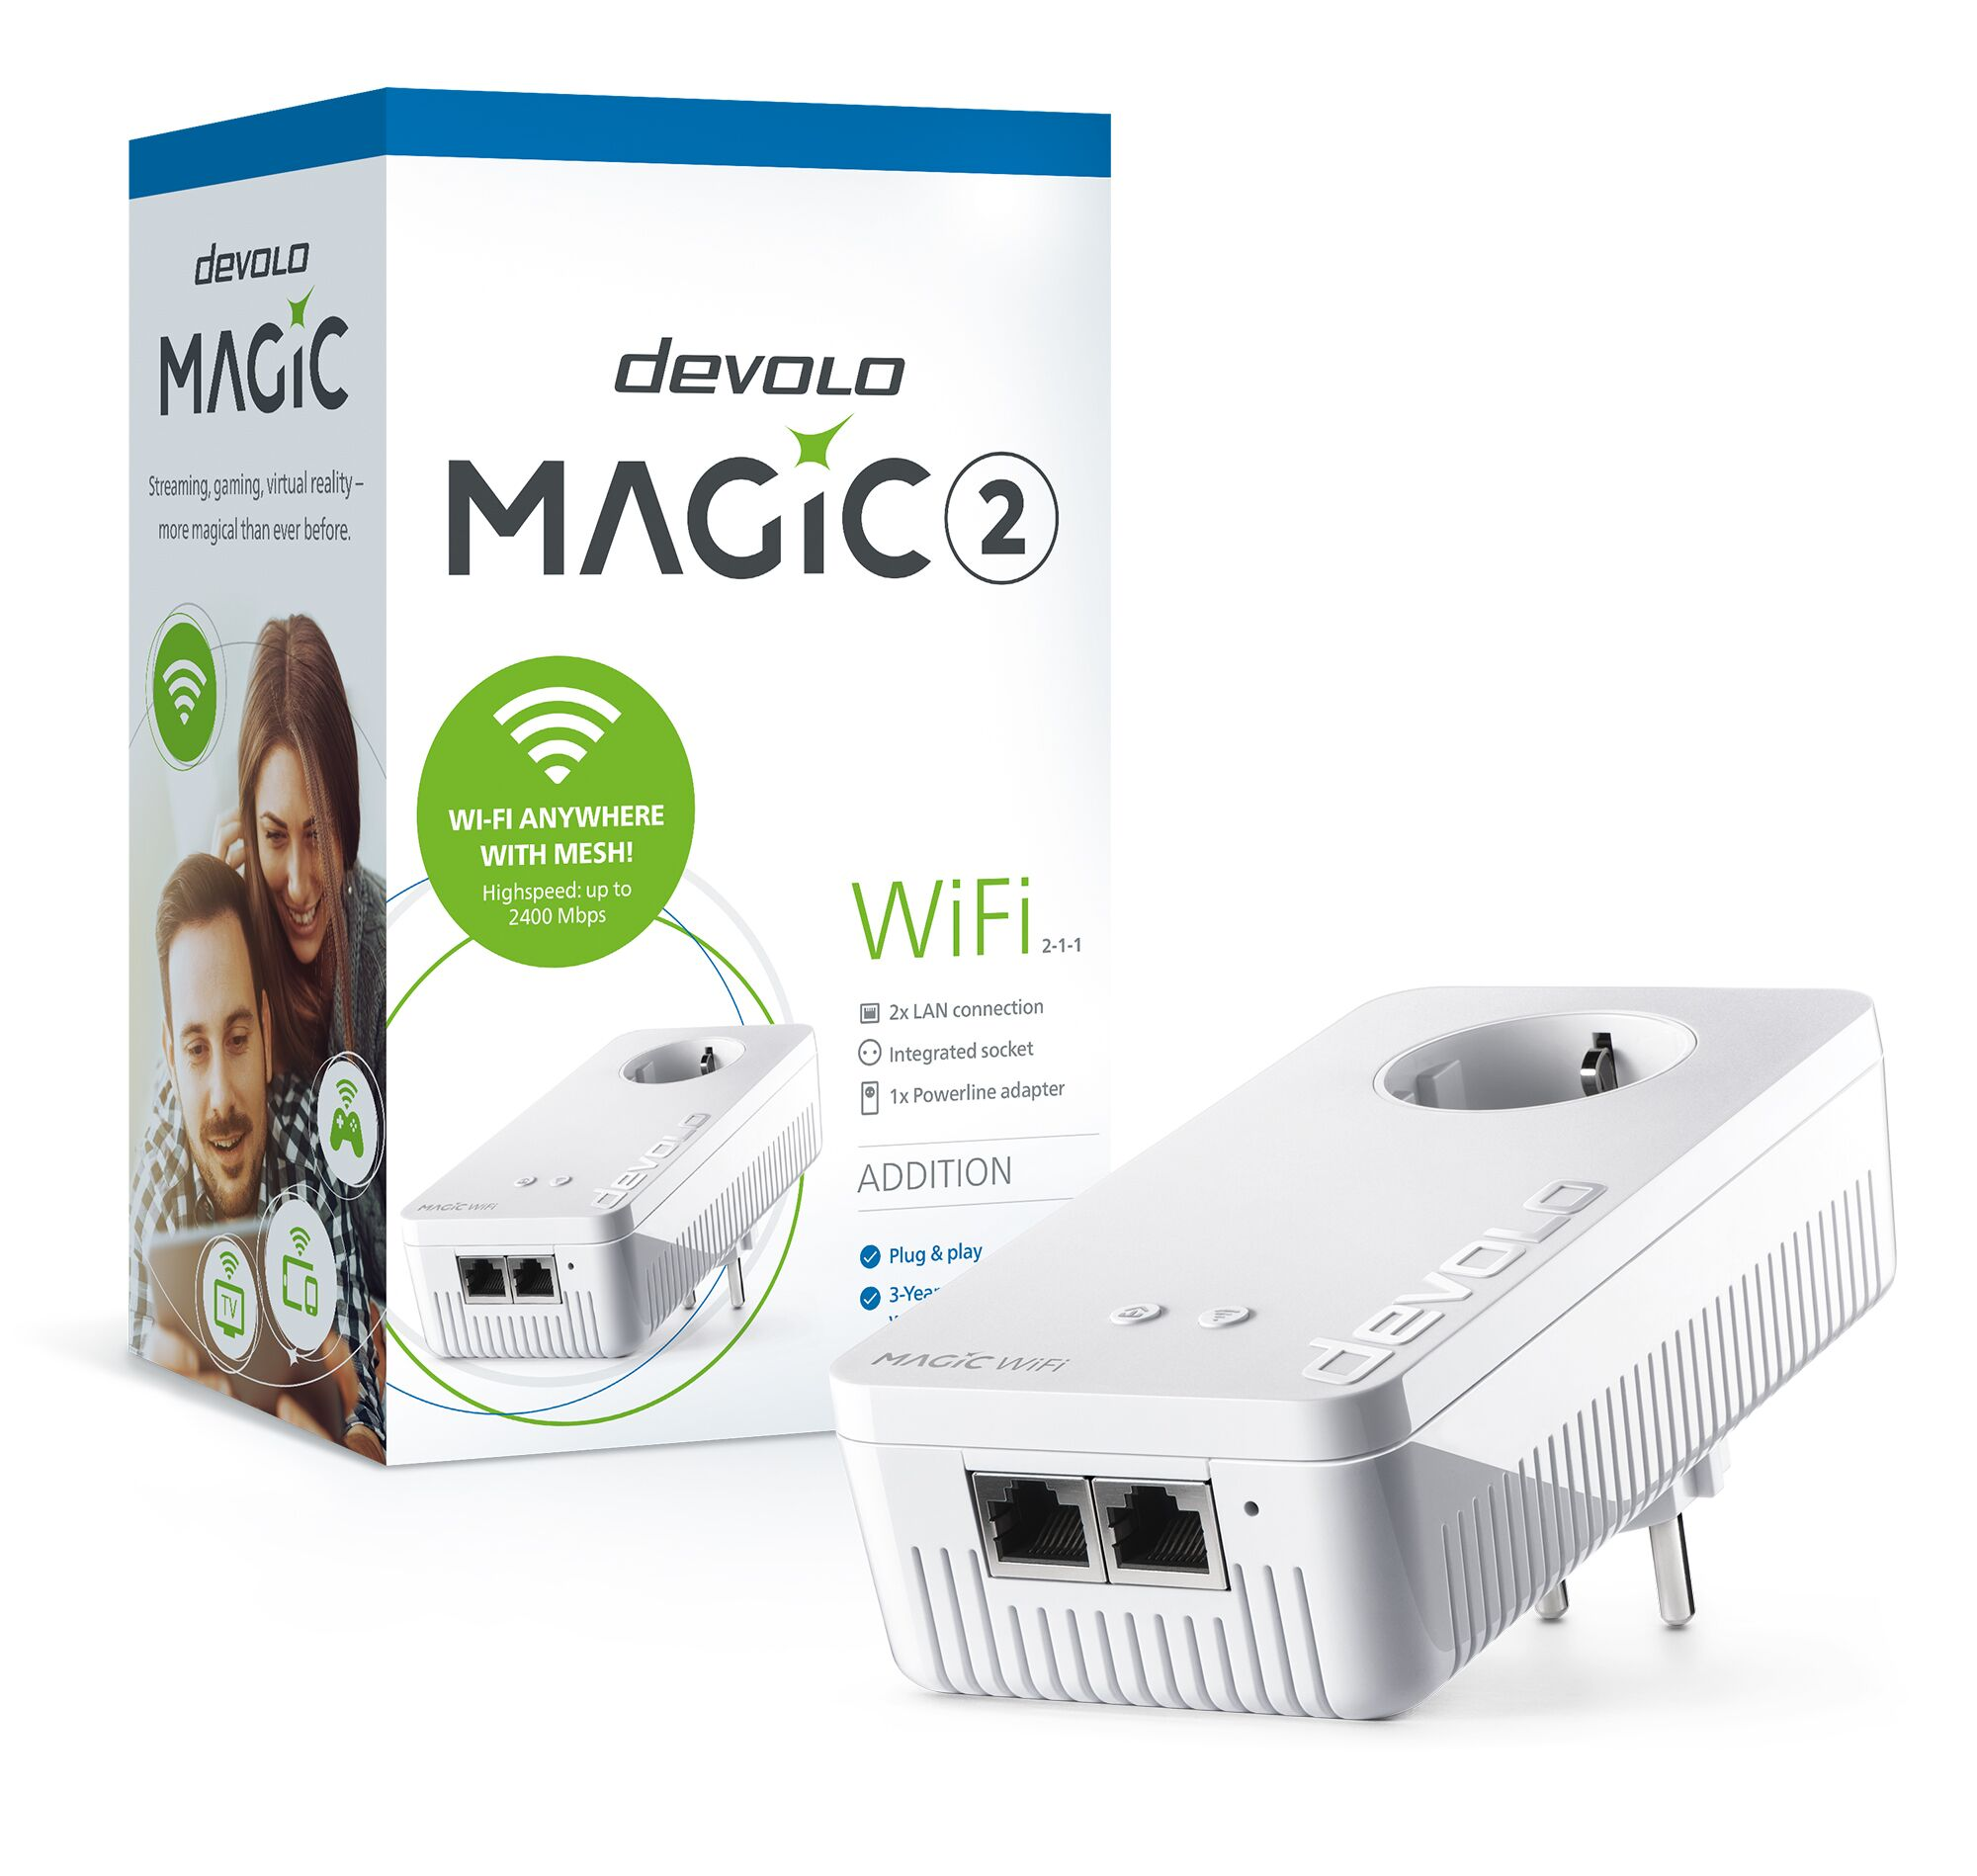 DEVOLO MAGIC 2 WIFI SINGLE ADAPTER